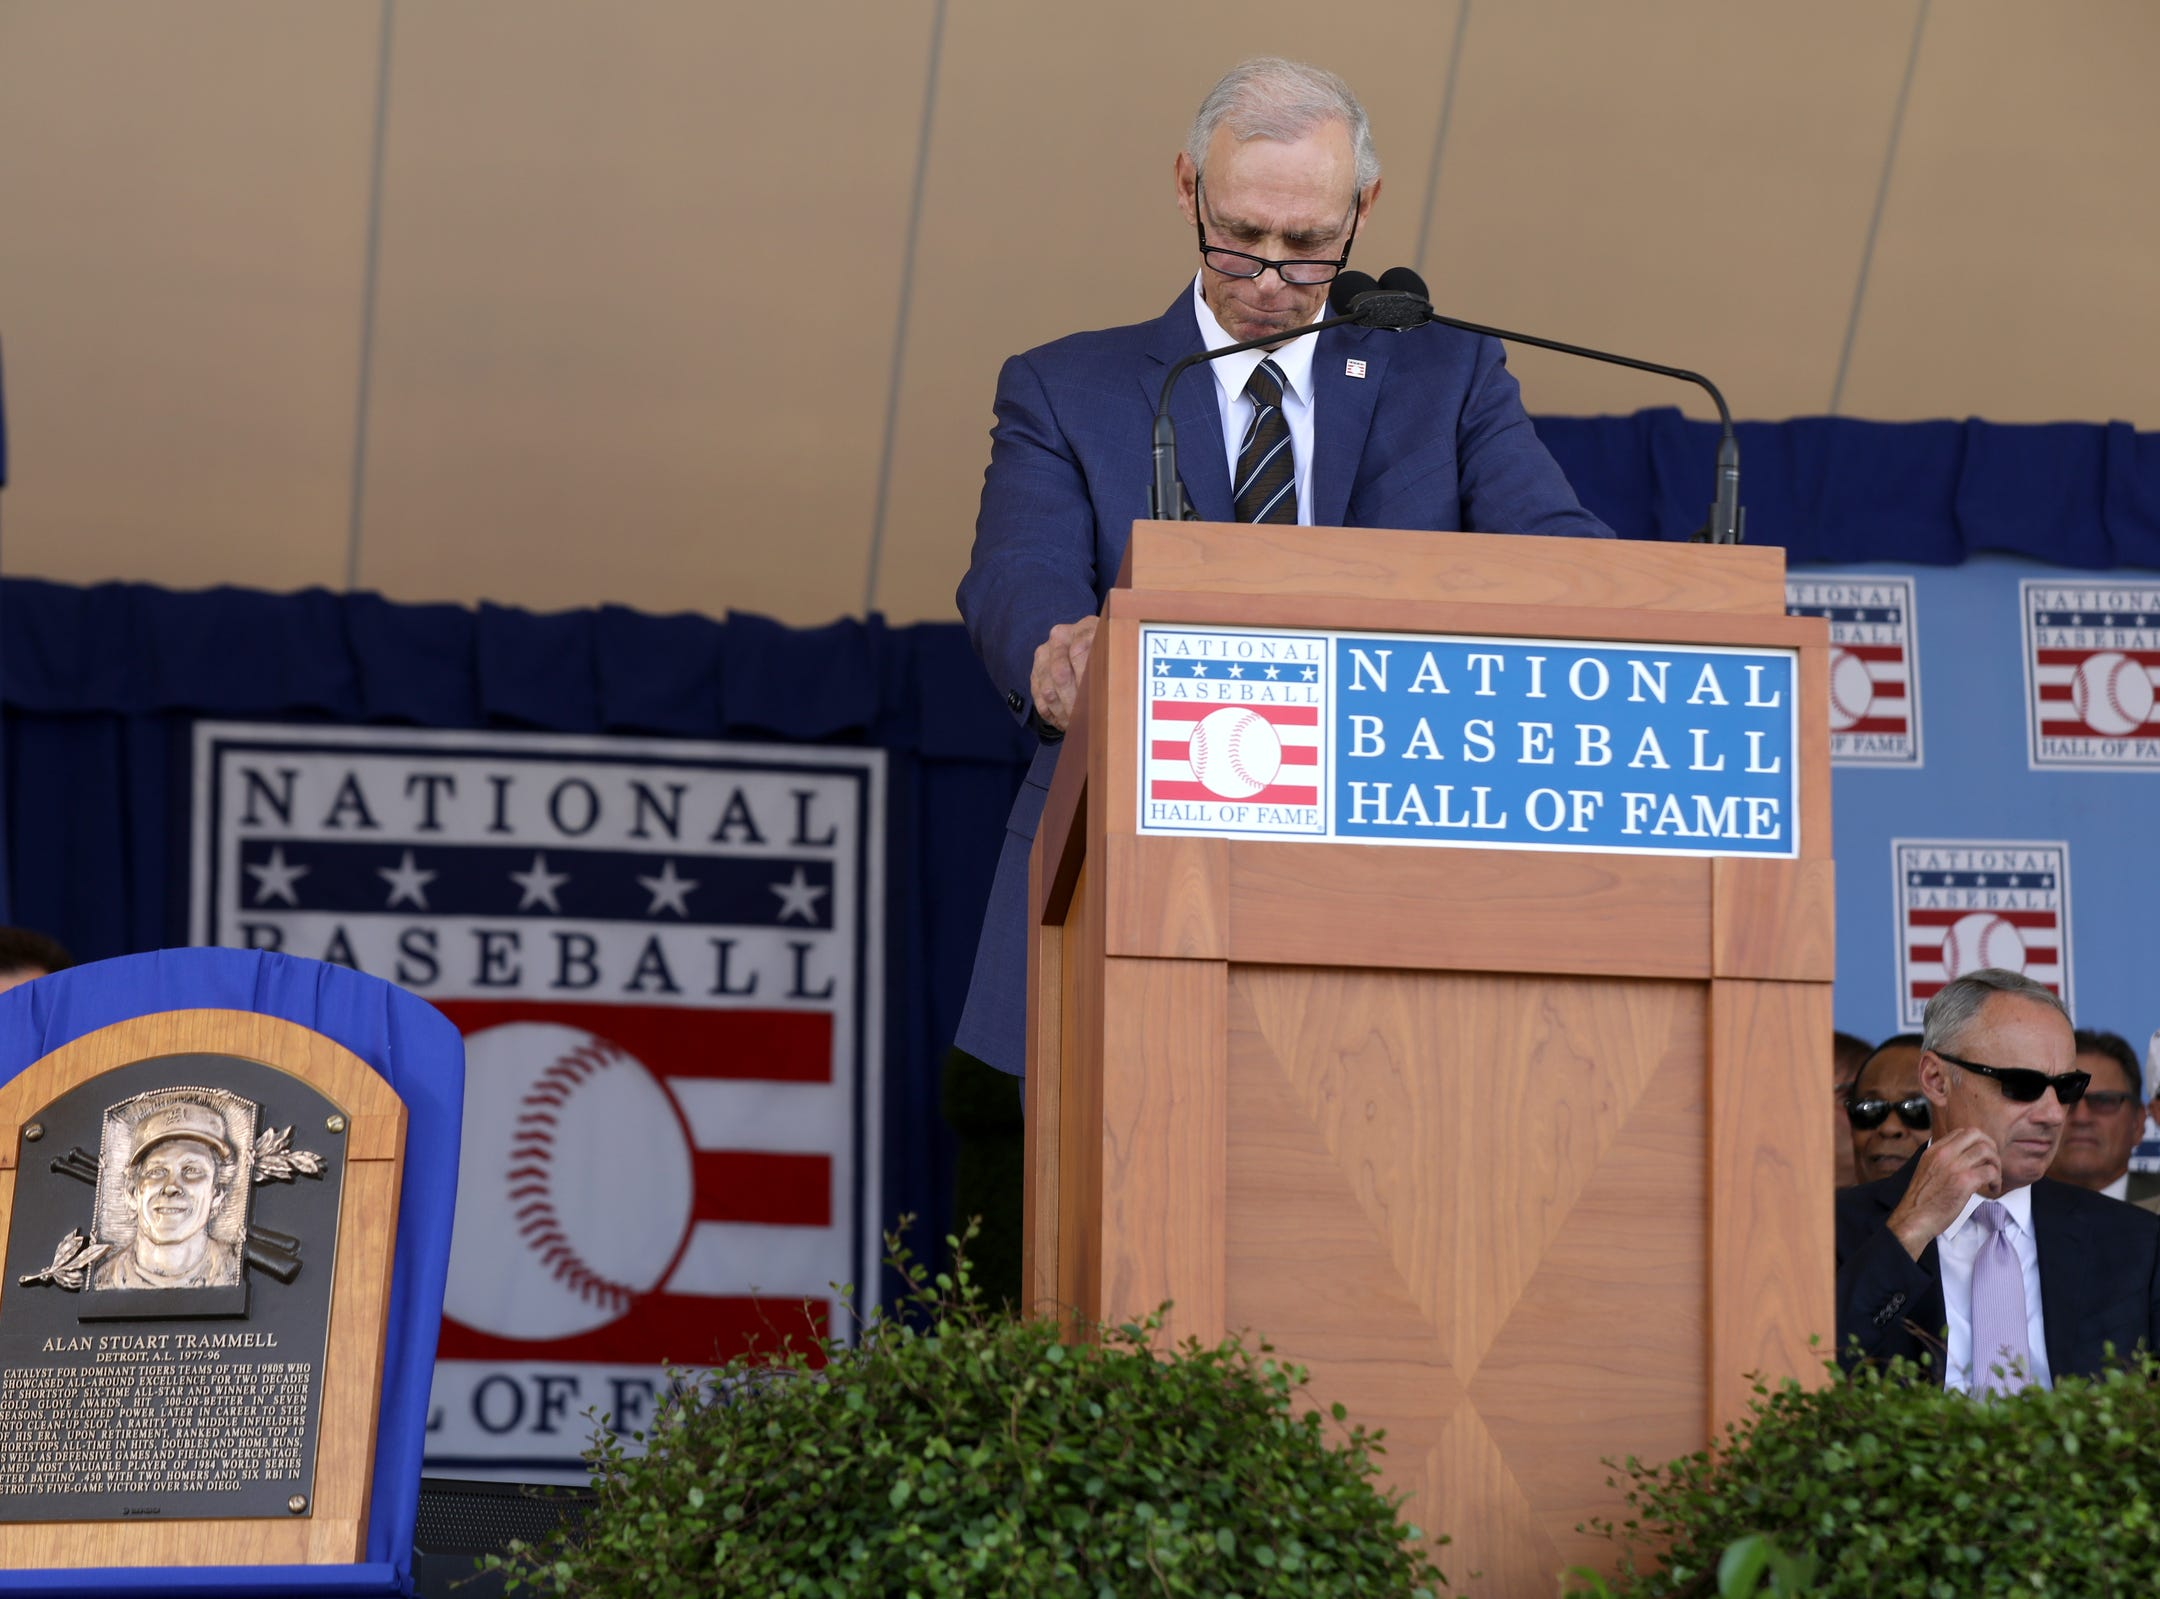 Tigers great Alan Trammell pauses when talking about his teammate Lou Whitaker and how he hopes he'll get in the Hall of Fame one day during his speech to a crowd of thousands at the Clark Sports Center during the National Baseball Hall of Fame induction ceremony in Cooperstown, NY on Sunday, July 29, 2018.